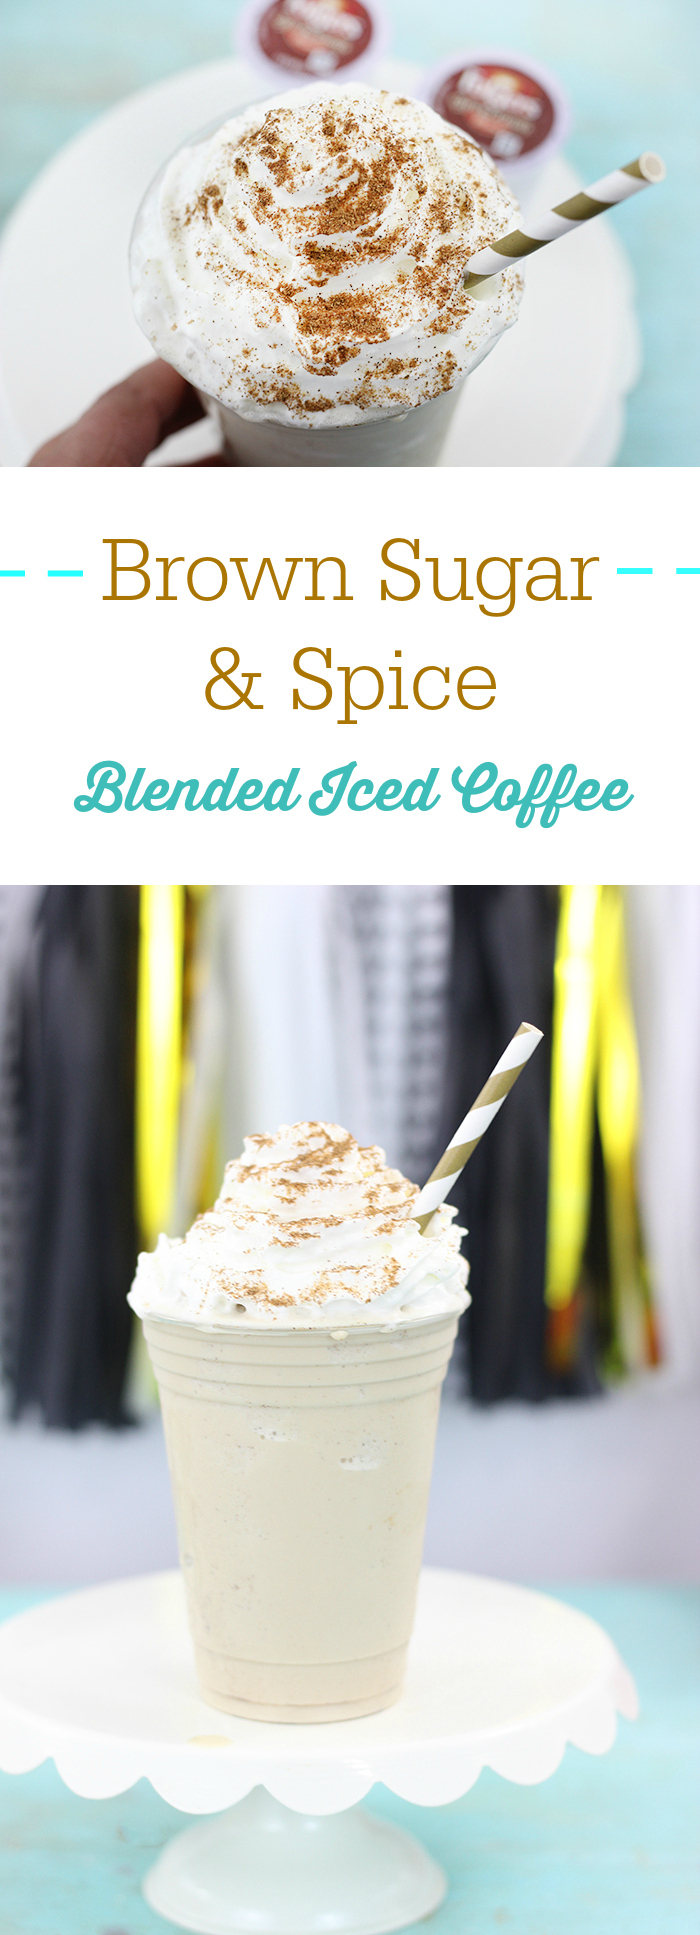 Brown Sugar & Spice Blended Coffee